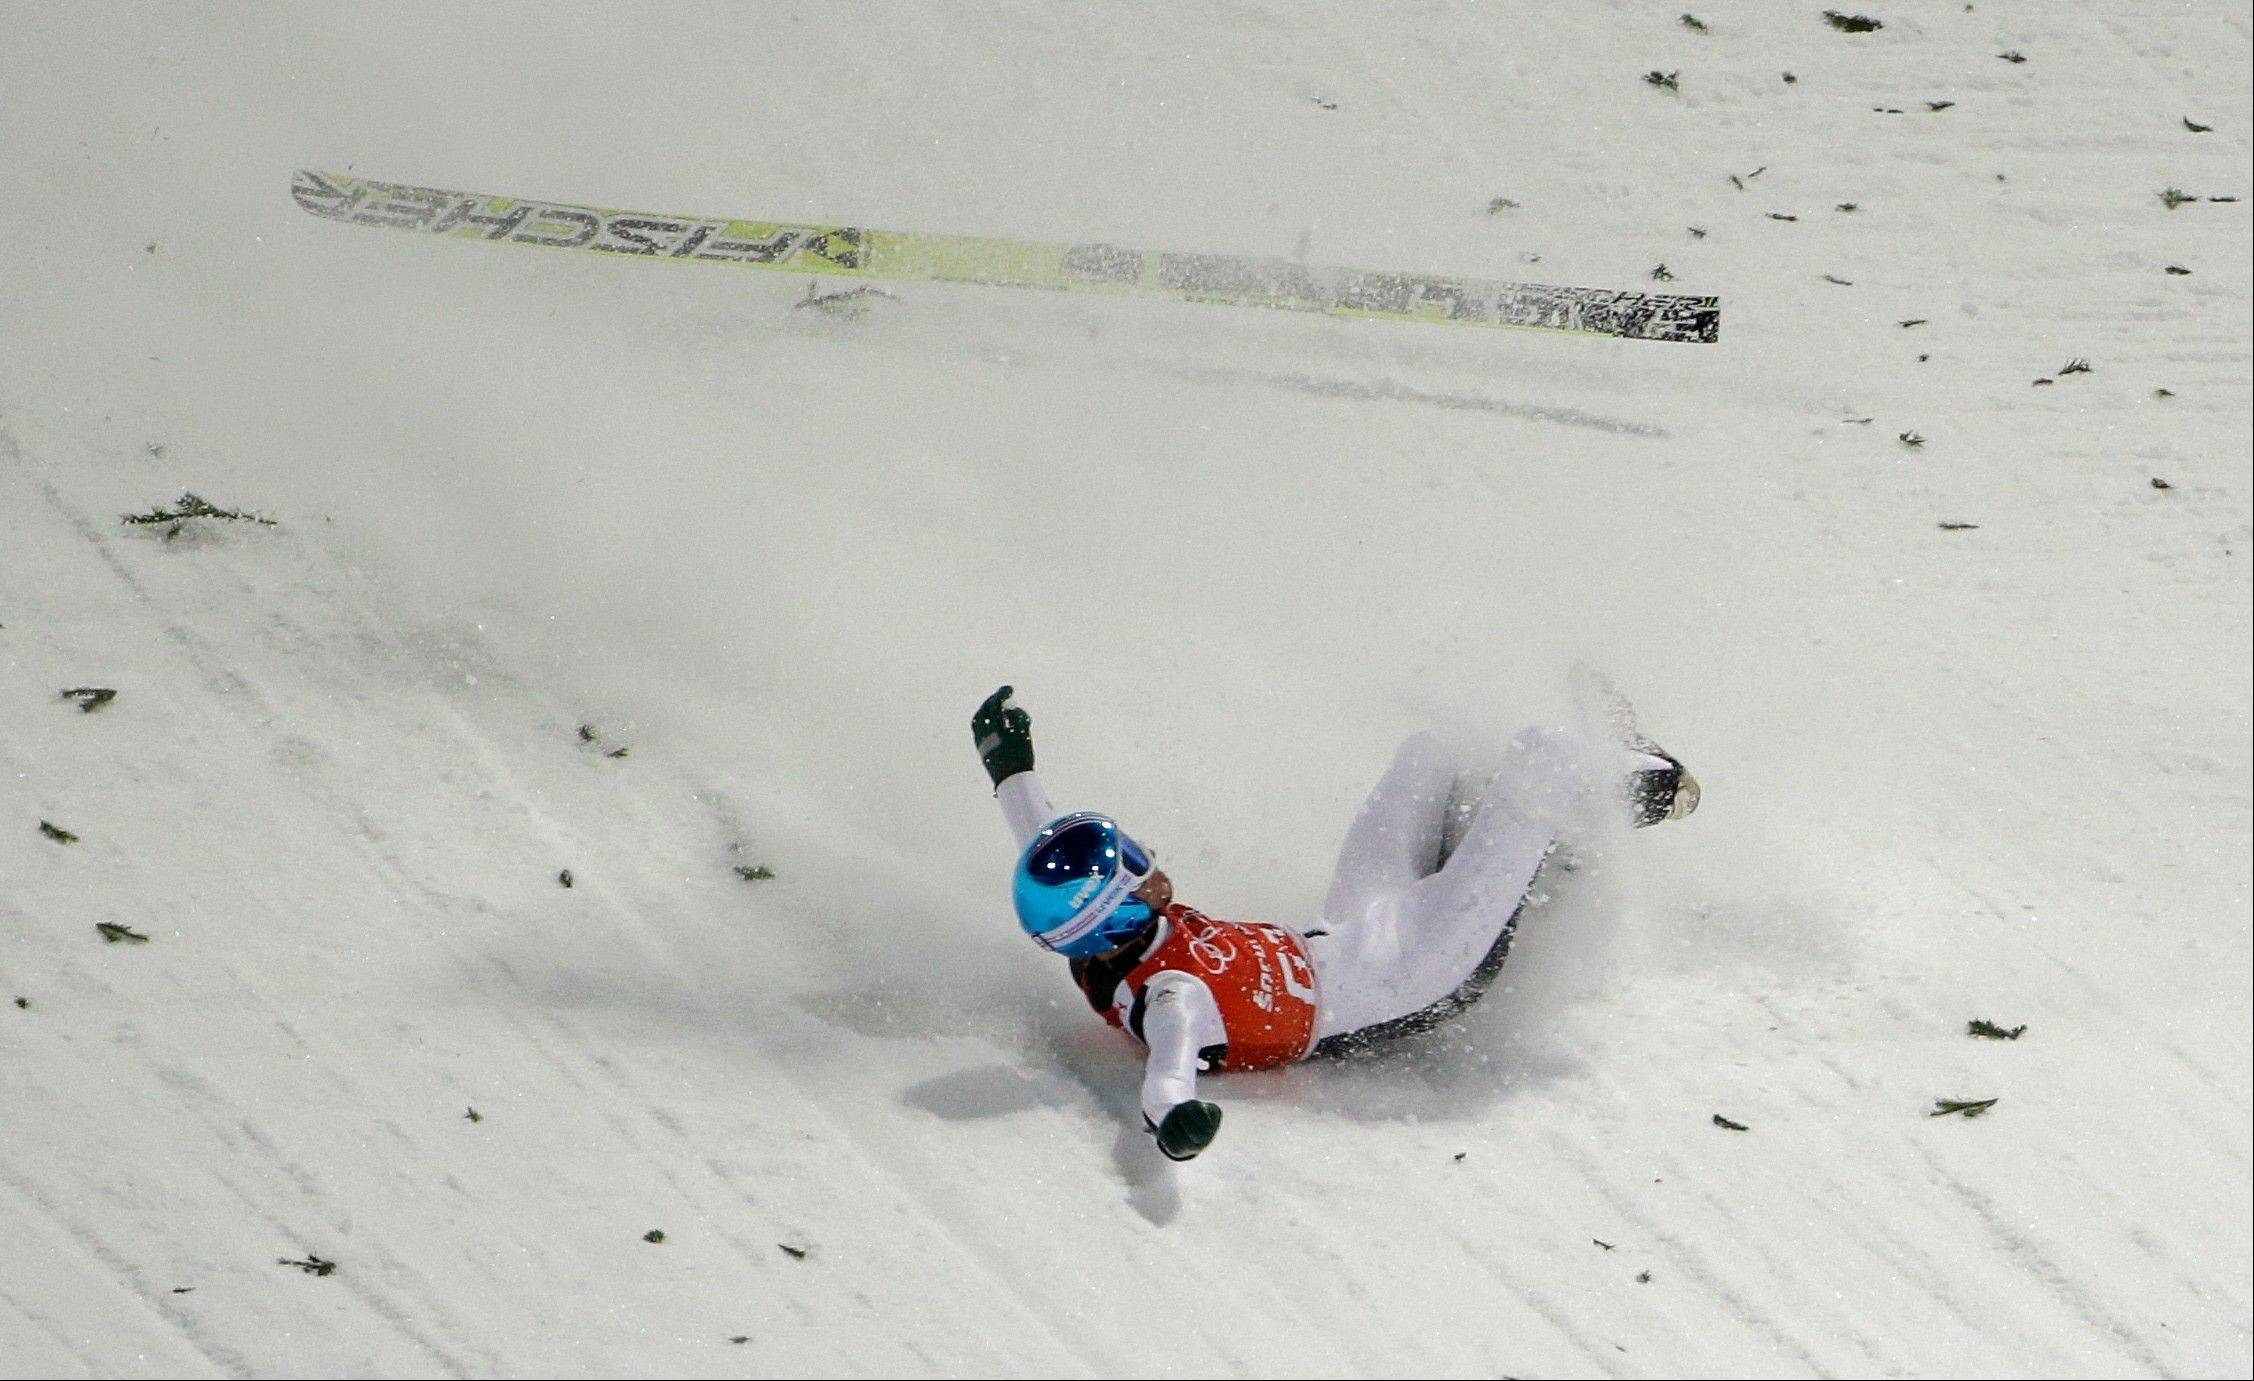 Slovenia's Robert Kranjec falls after a training jump from the normal hill of the men's ski jumping at the 2014 Winter Olympics, Thursday, Feb. 6, 2014, in Krasnaya Polyana, Russia.